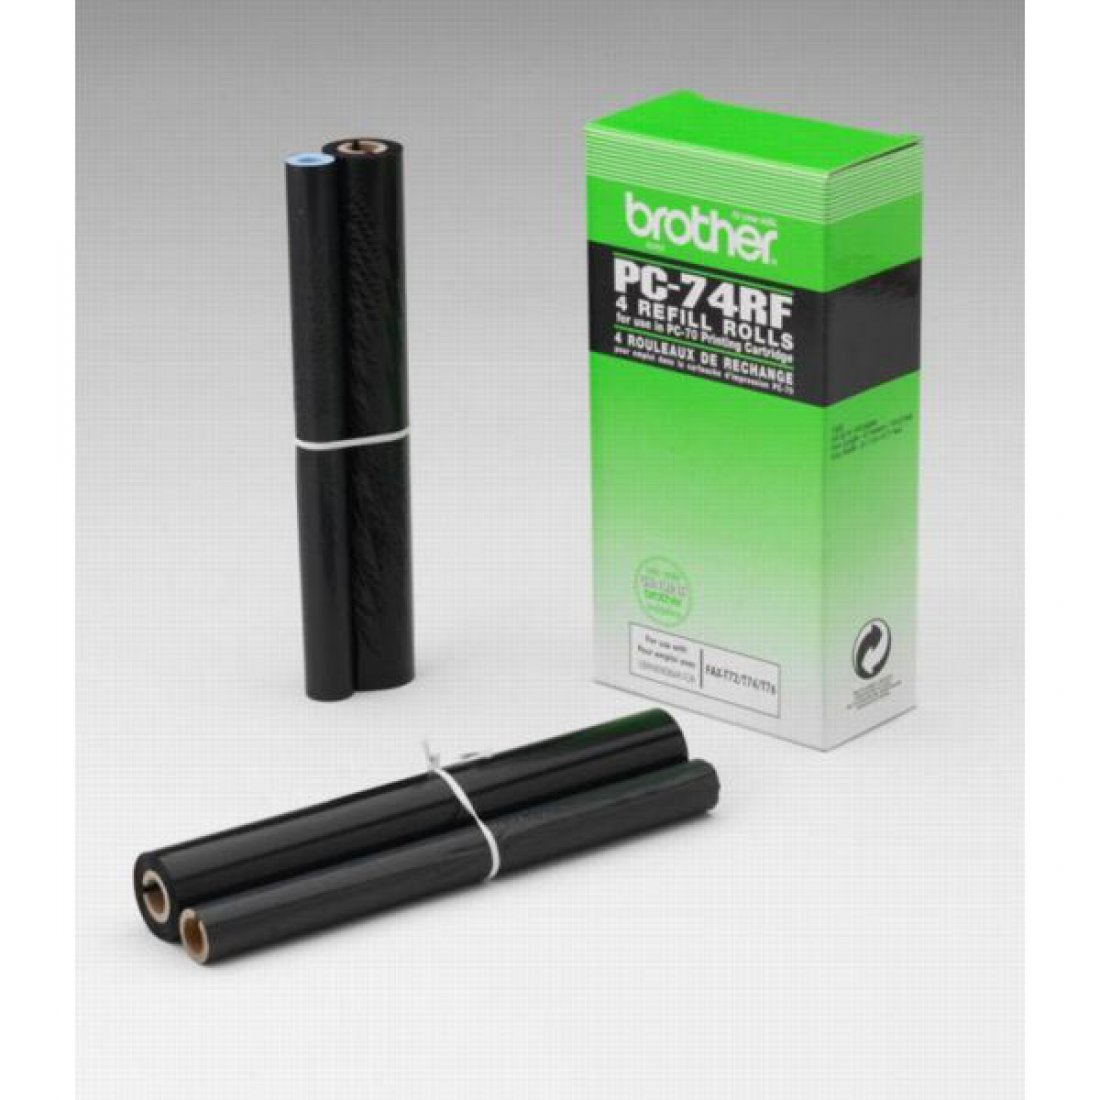 BROTHER PC74 4X REFILL